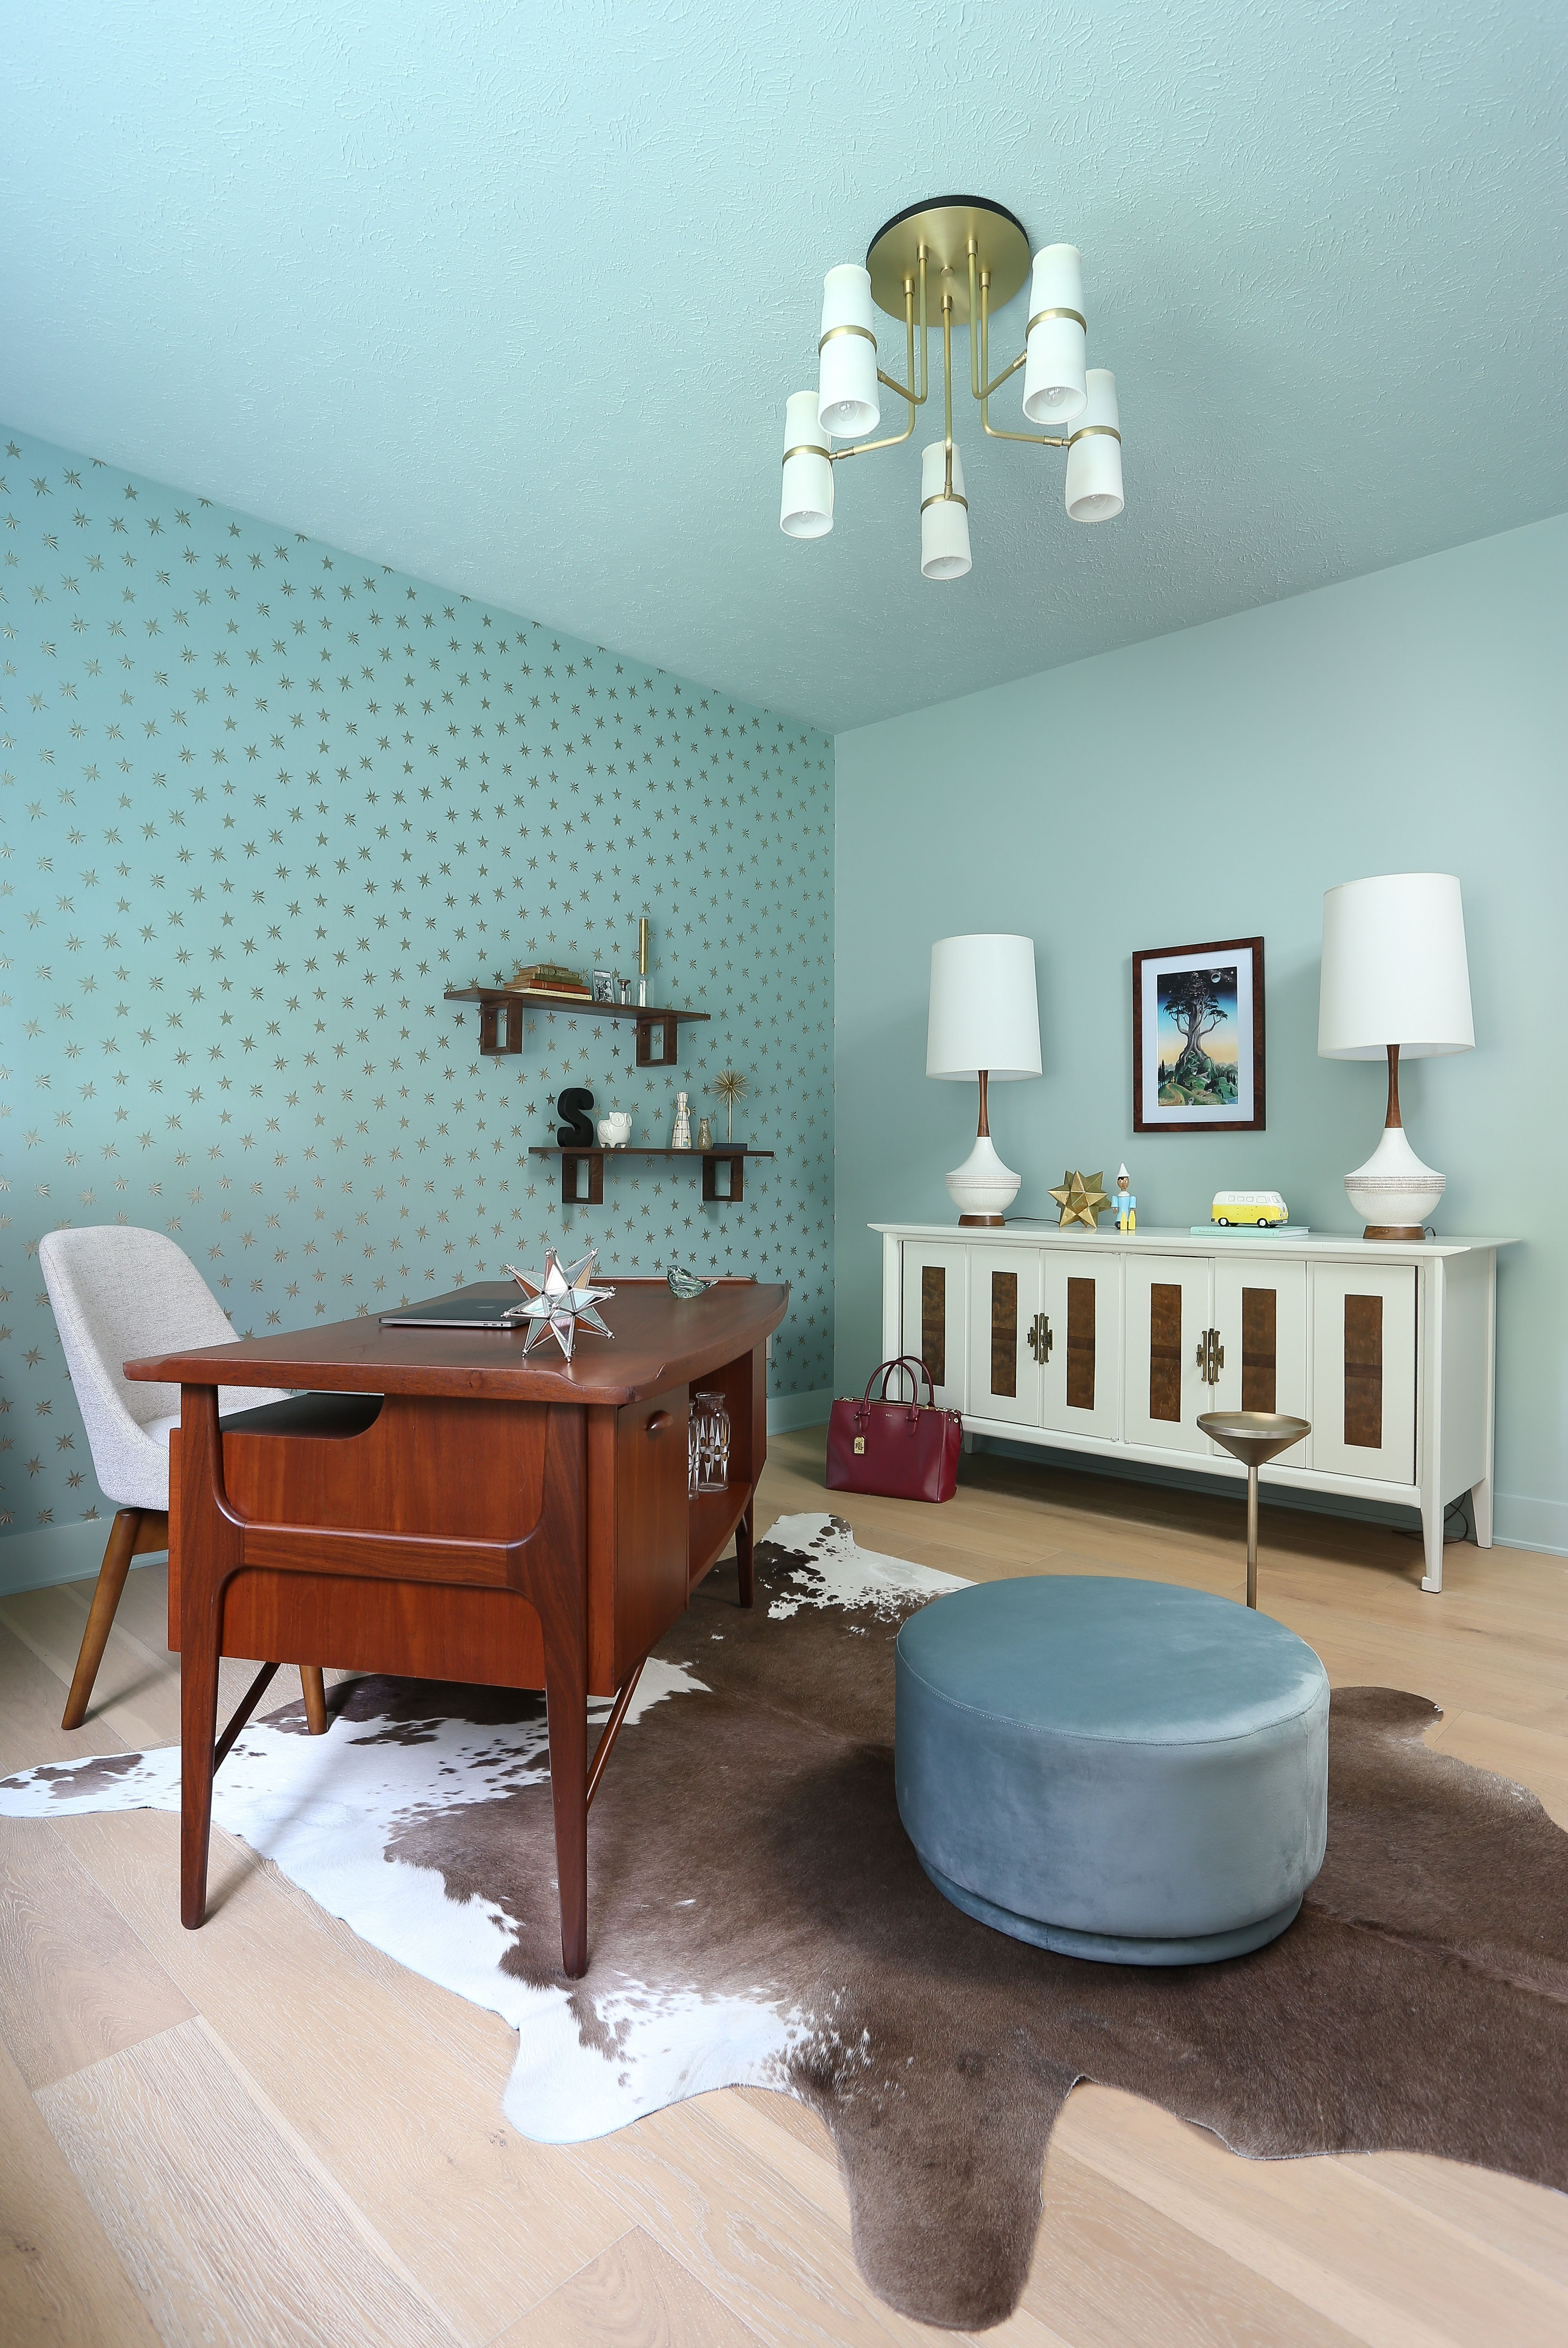 Your space should reflect you, like this home office bold